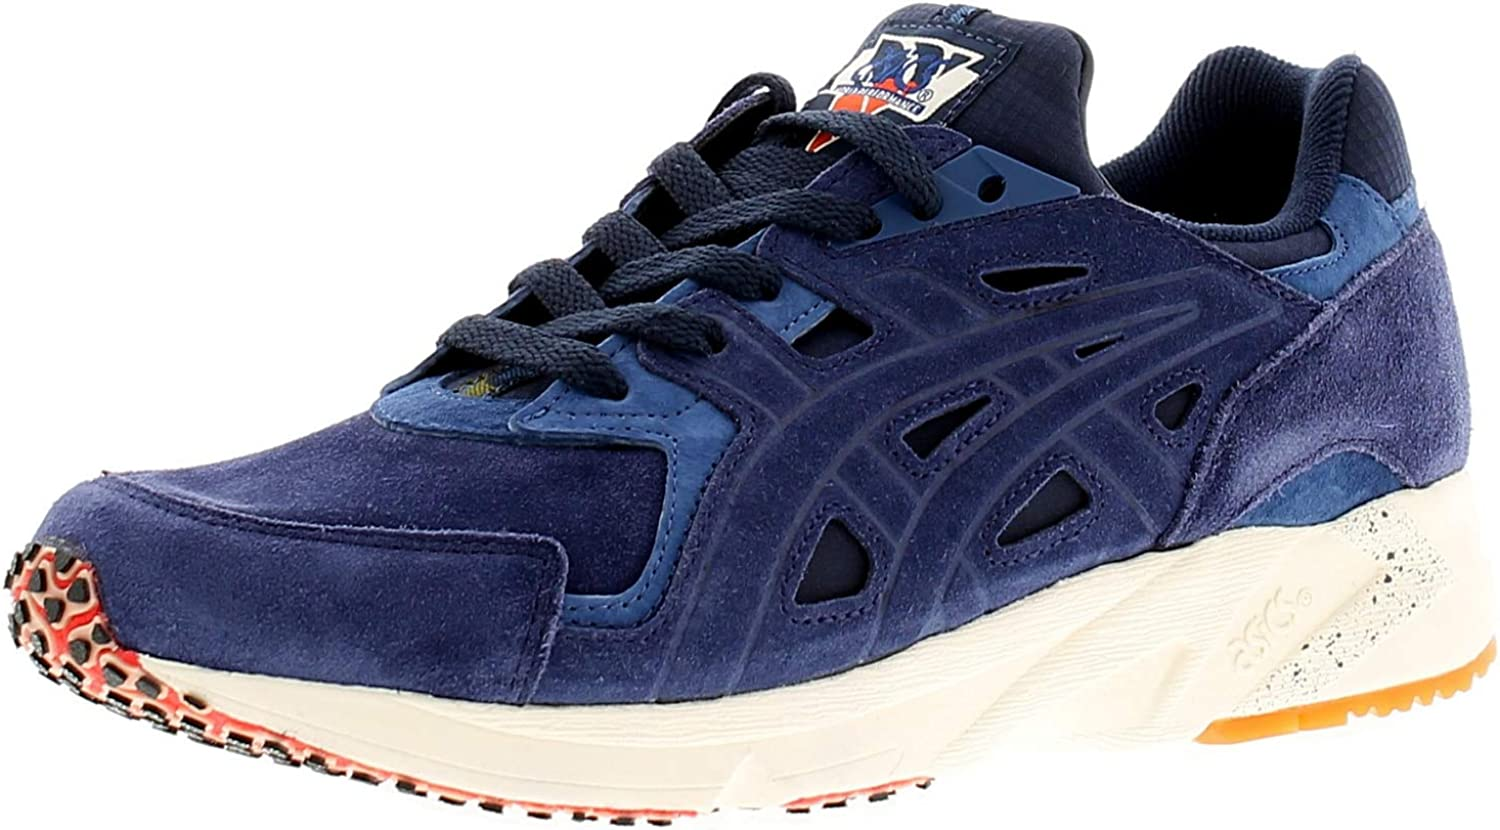 ASICS Gel Ds Trainer Mens Suede Leather Material Trainers Navy